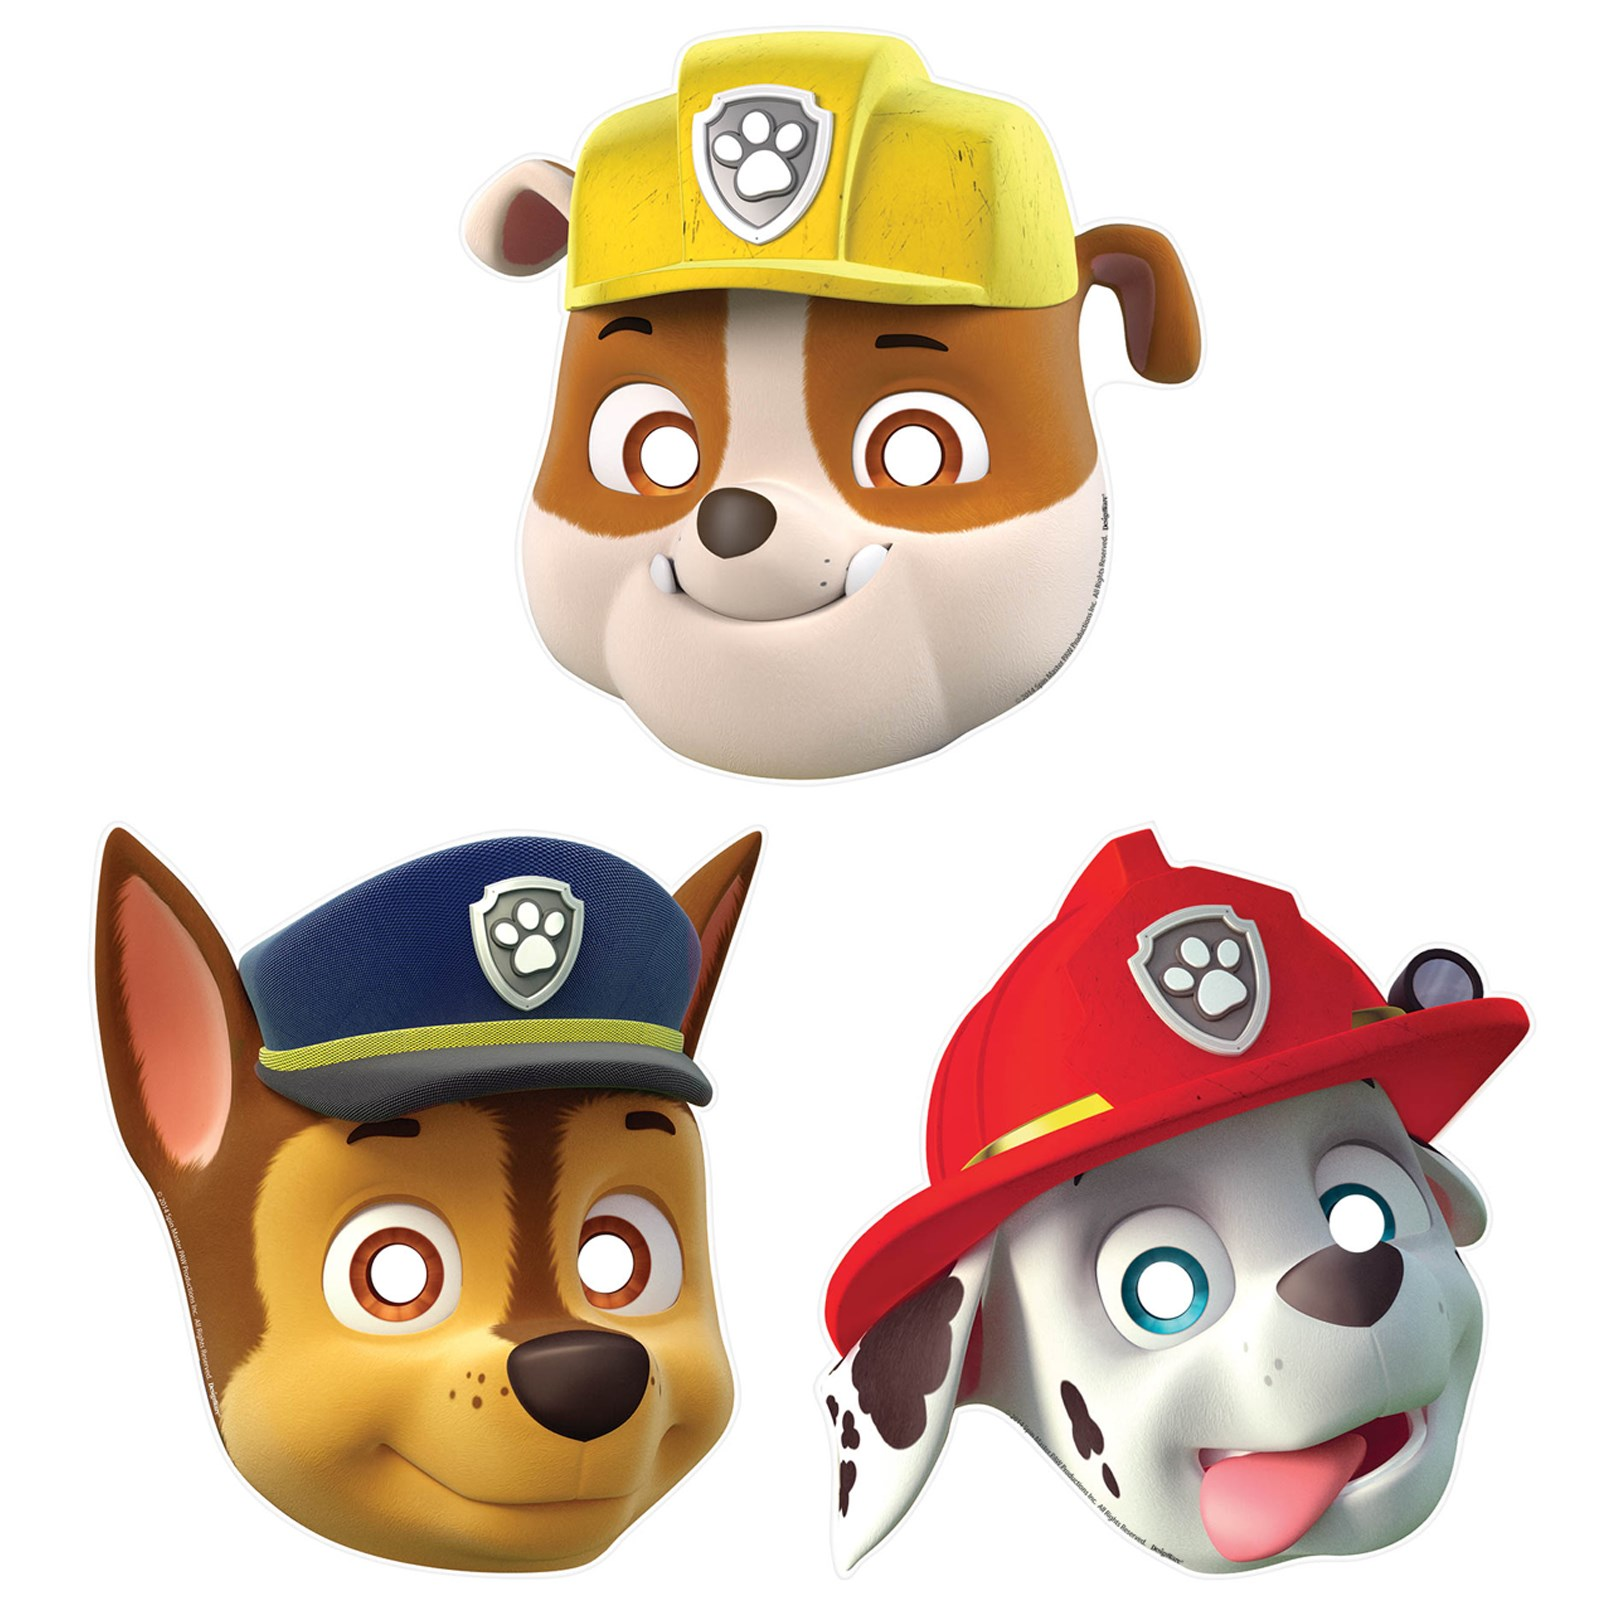 PAW Patrol Paper Masks (8) How to Throw the Perfect PAW Patrol Birthday Party